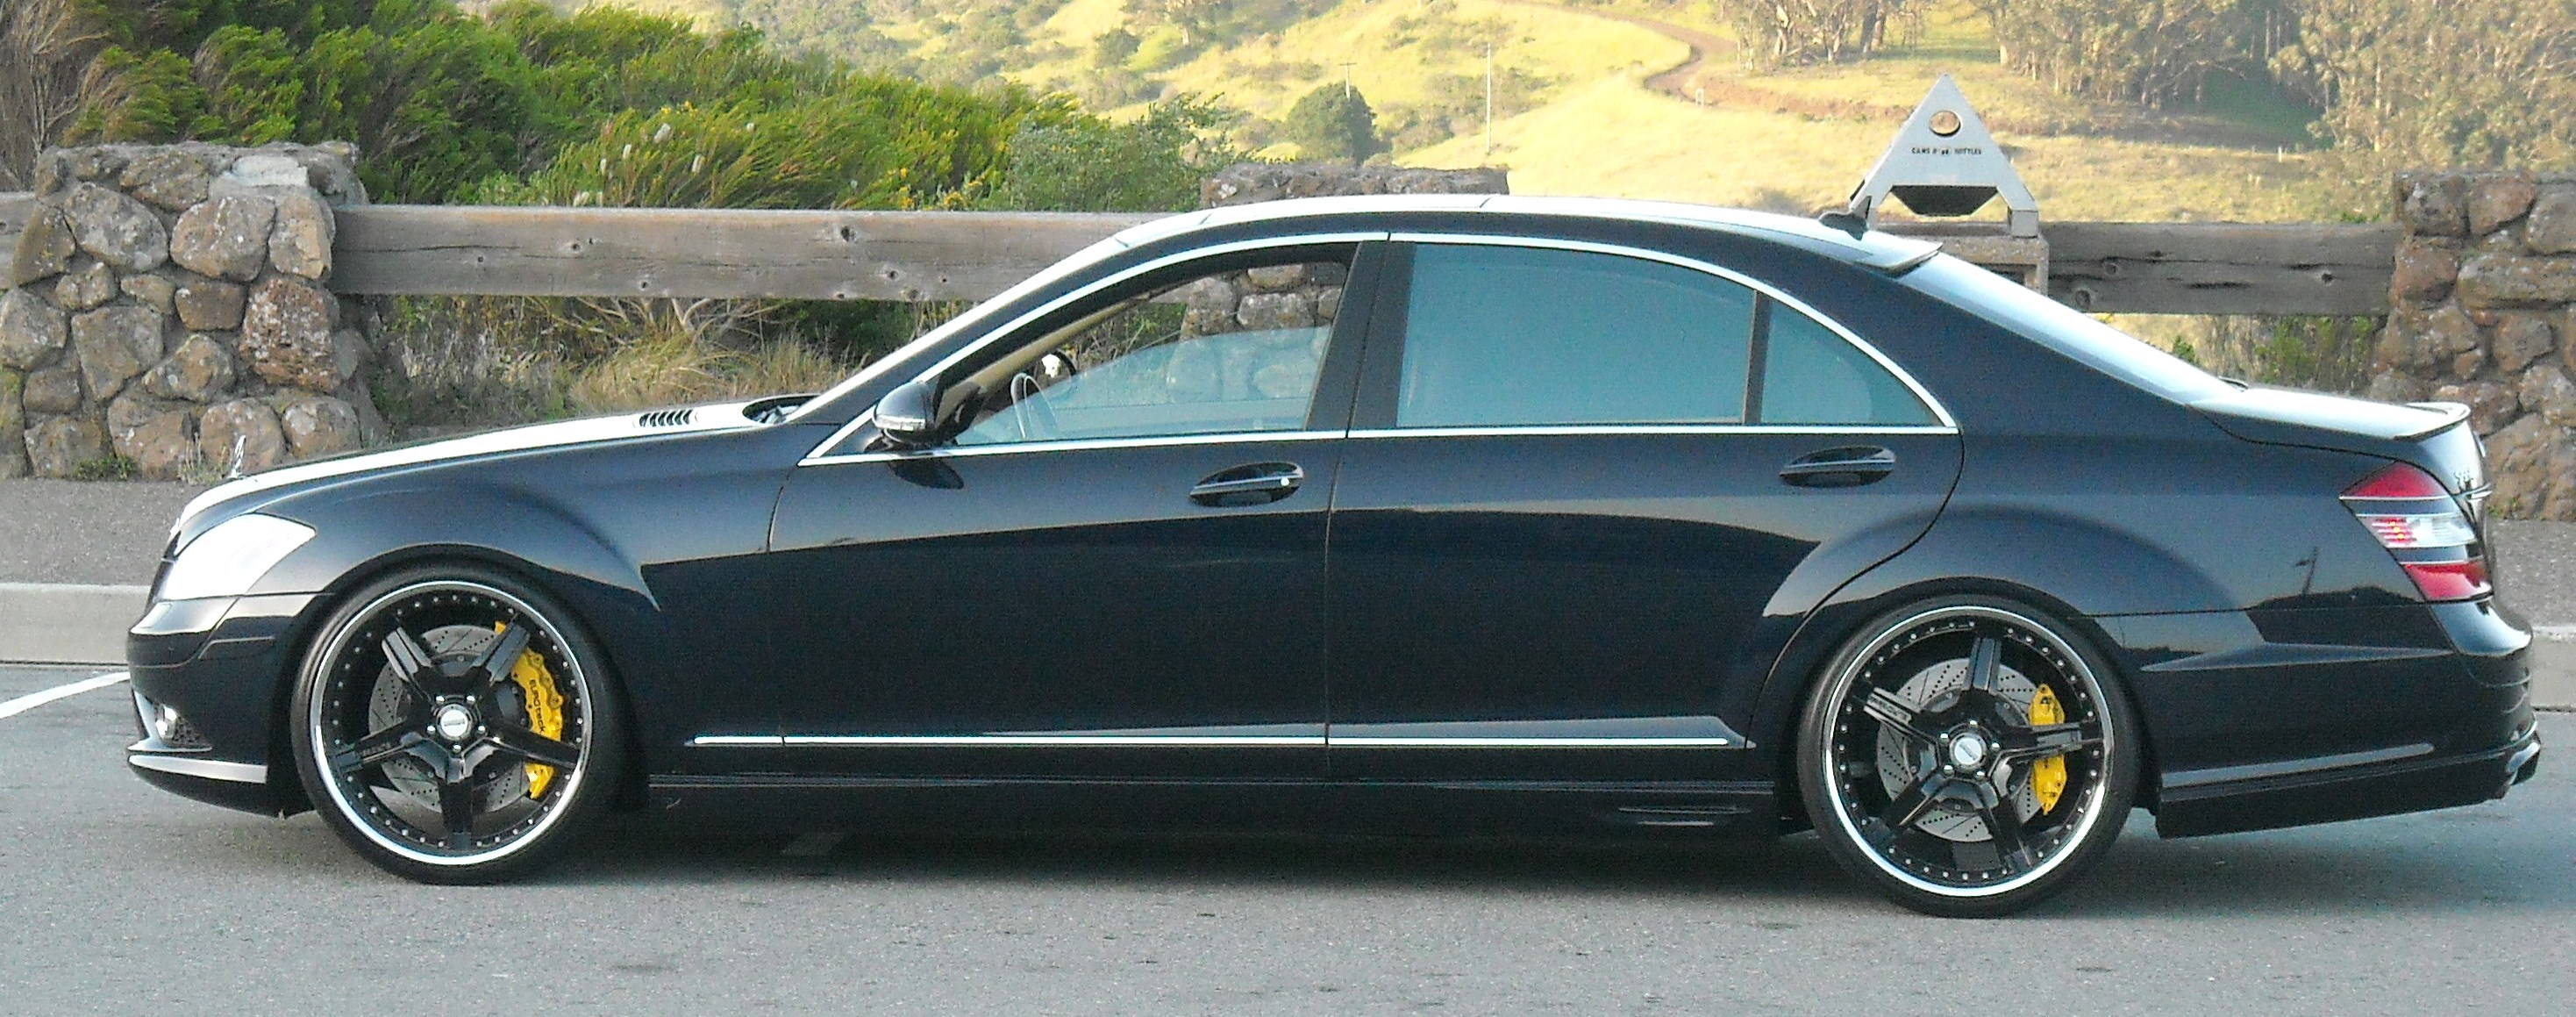 S5fiddy 2008 mercedes benz s class specs photos for Mercedes benz s500 2008